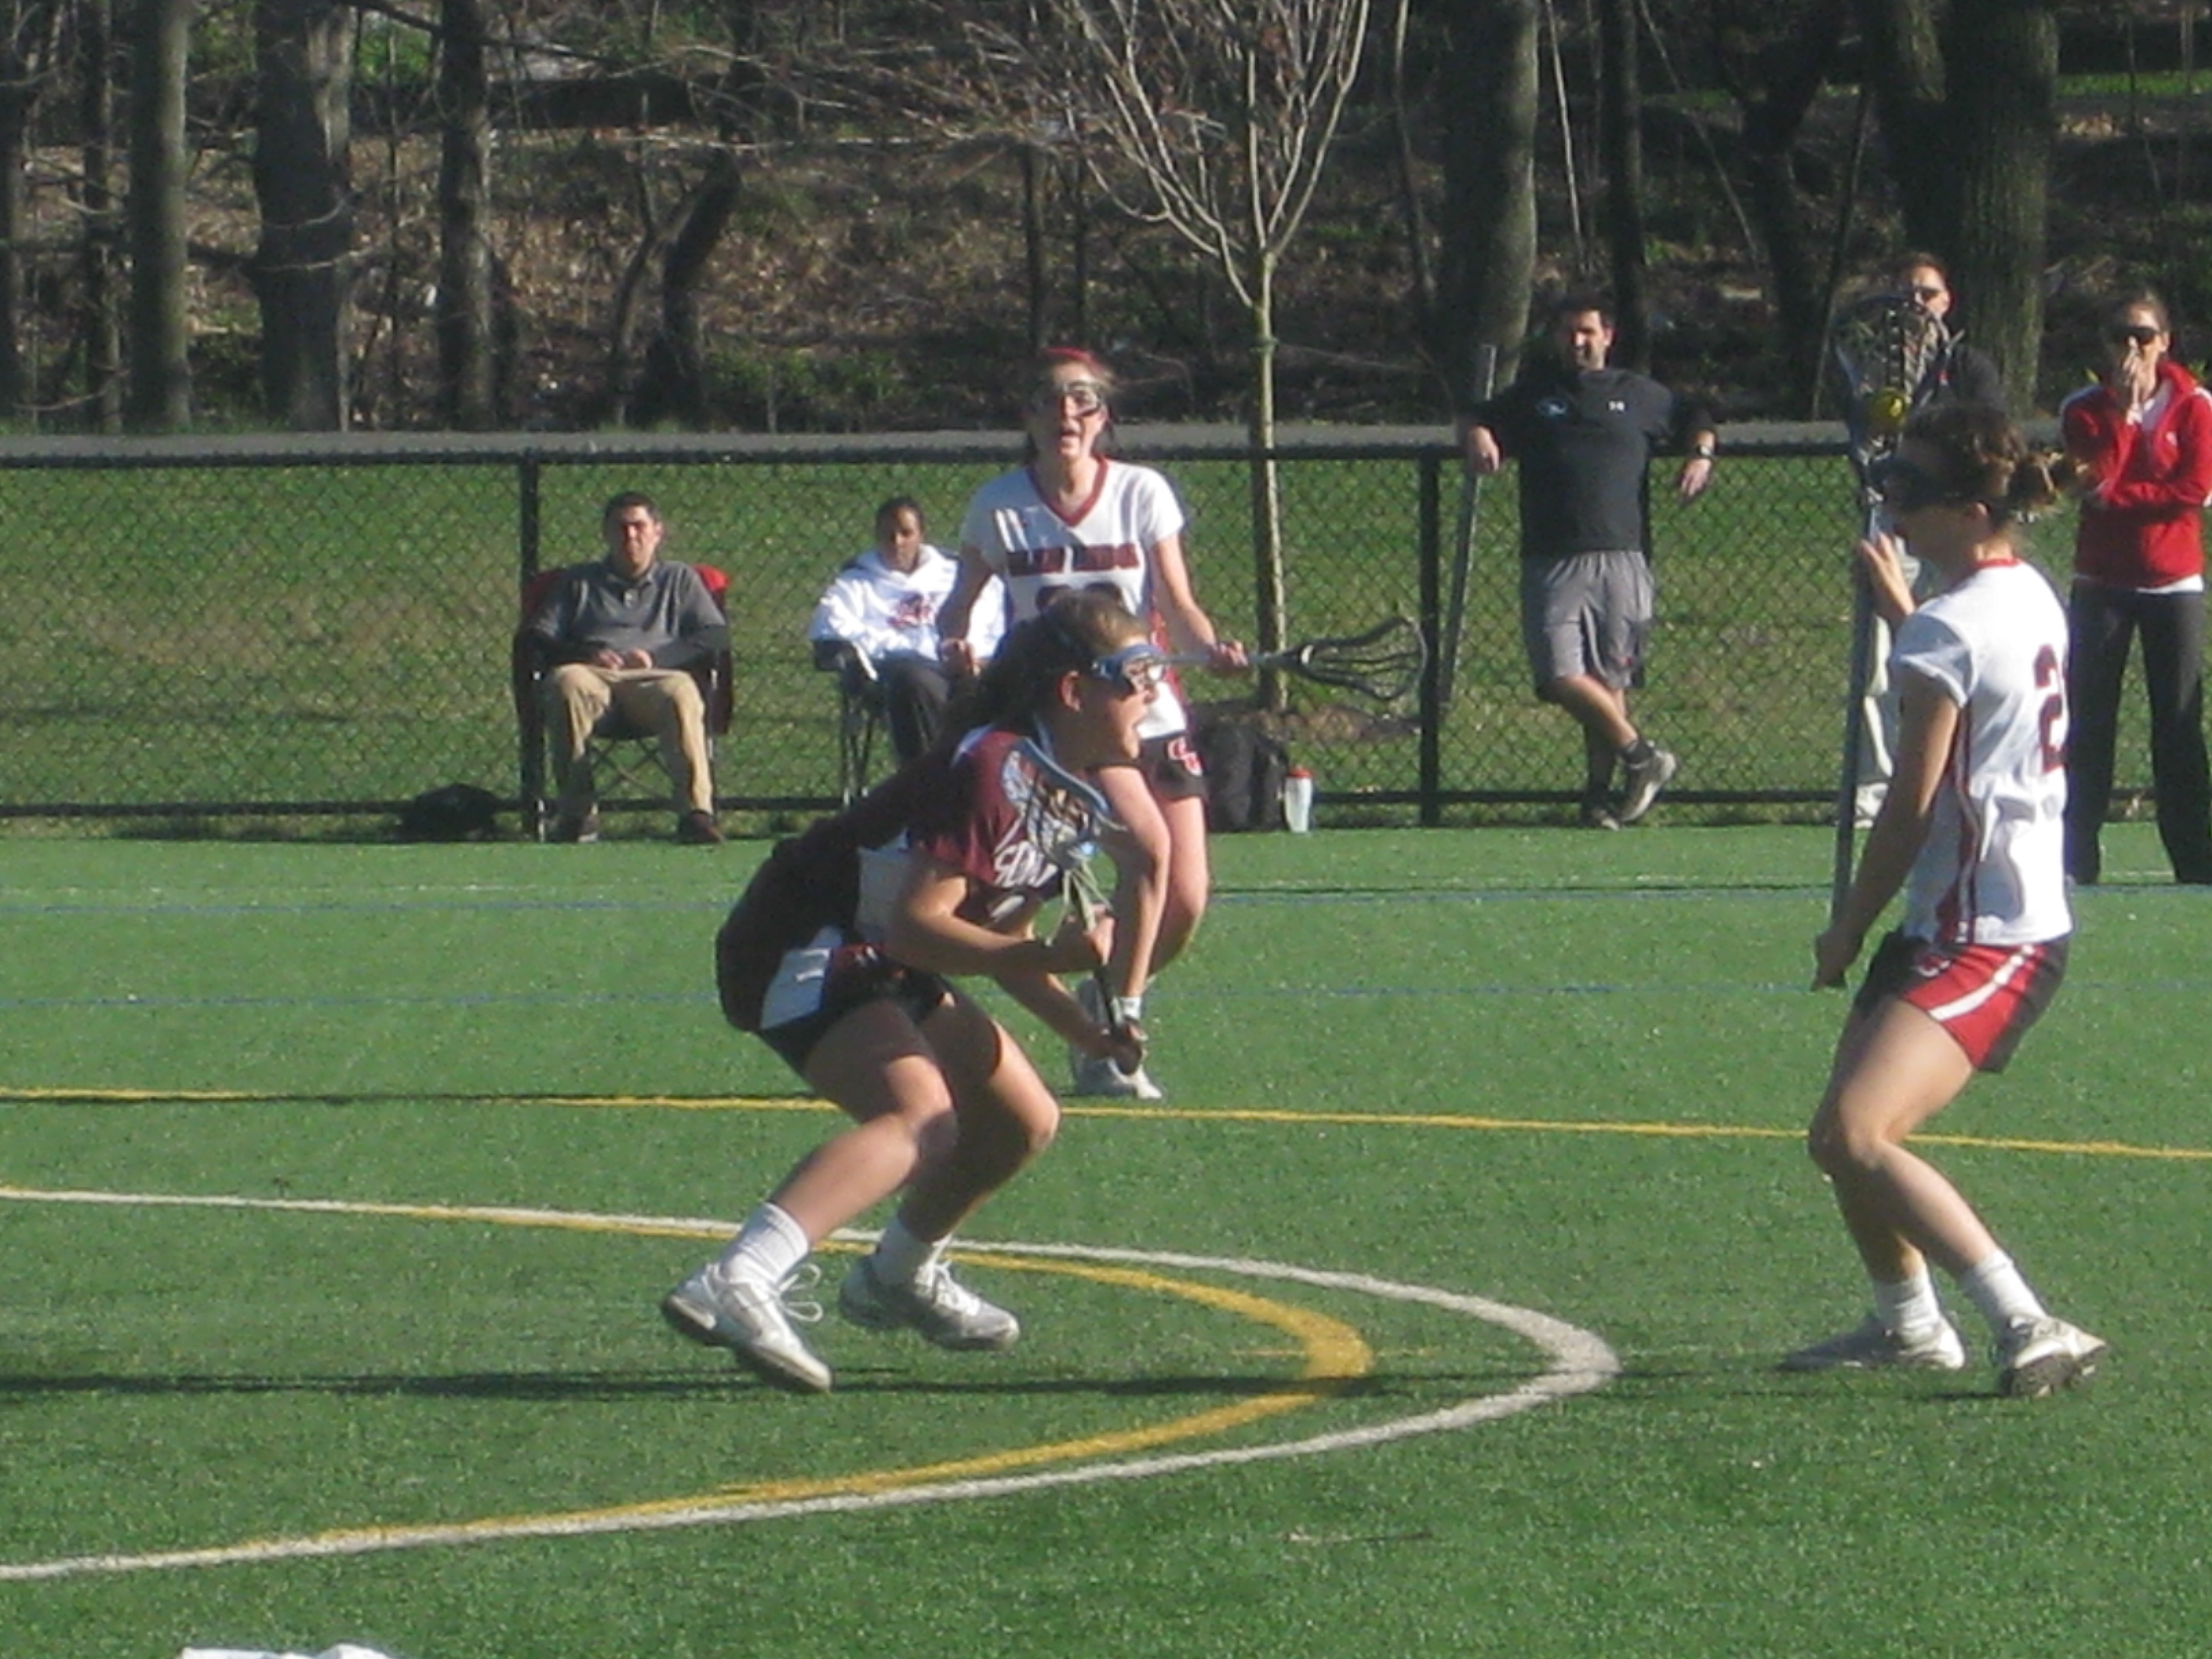 75645adc605facbfb025_summit_girls_lax_012.jpg